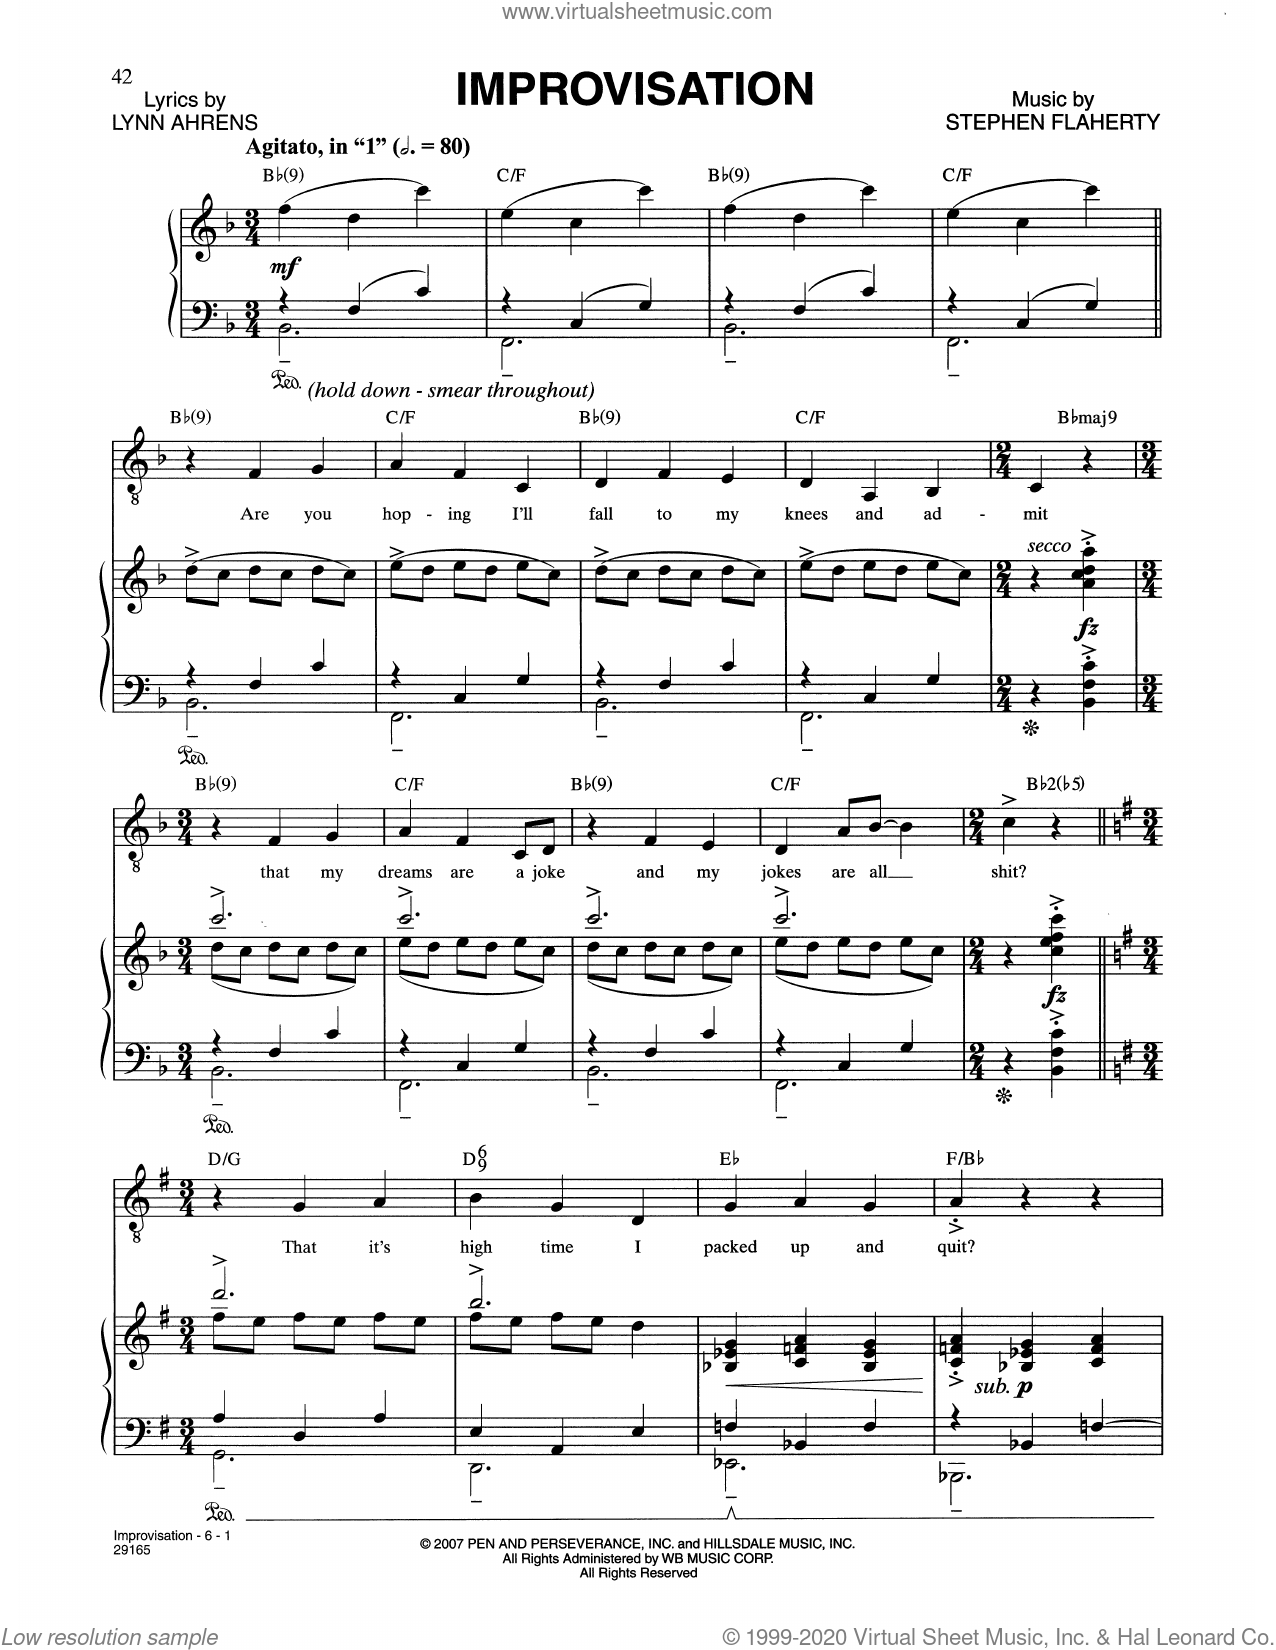 Improvisation (from The Glorious Ones) sheet music for voice and piano by Stephen Flaherty, Lynn Ahrens and Stephen Flaherty and Django Reinhardt, intermediate skill level